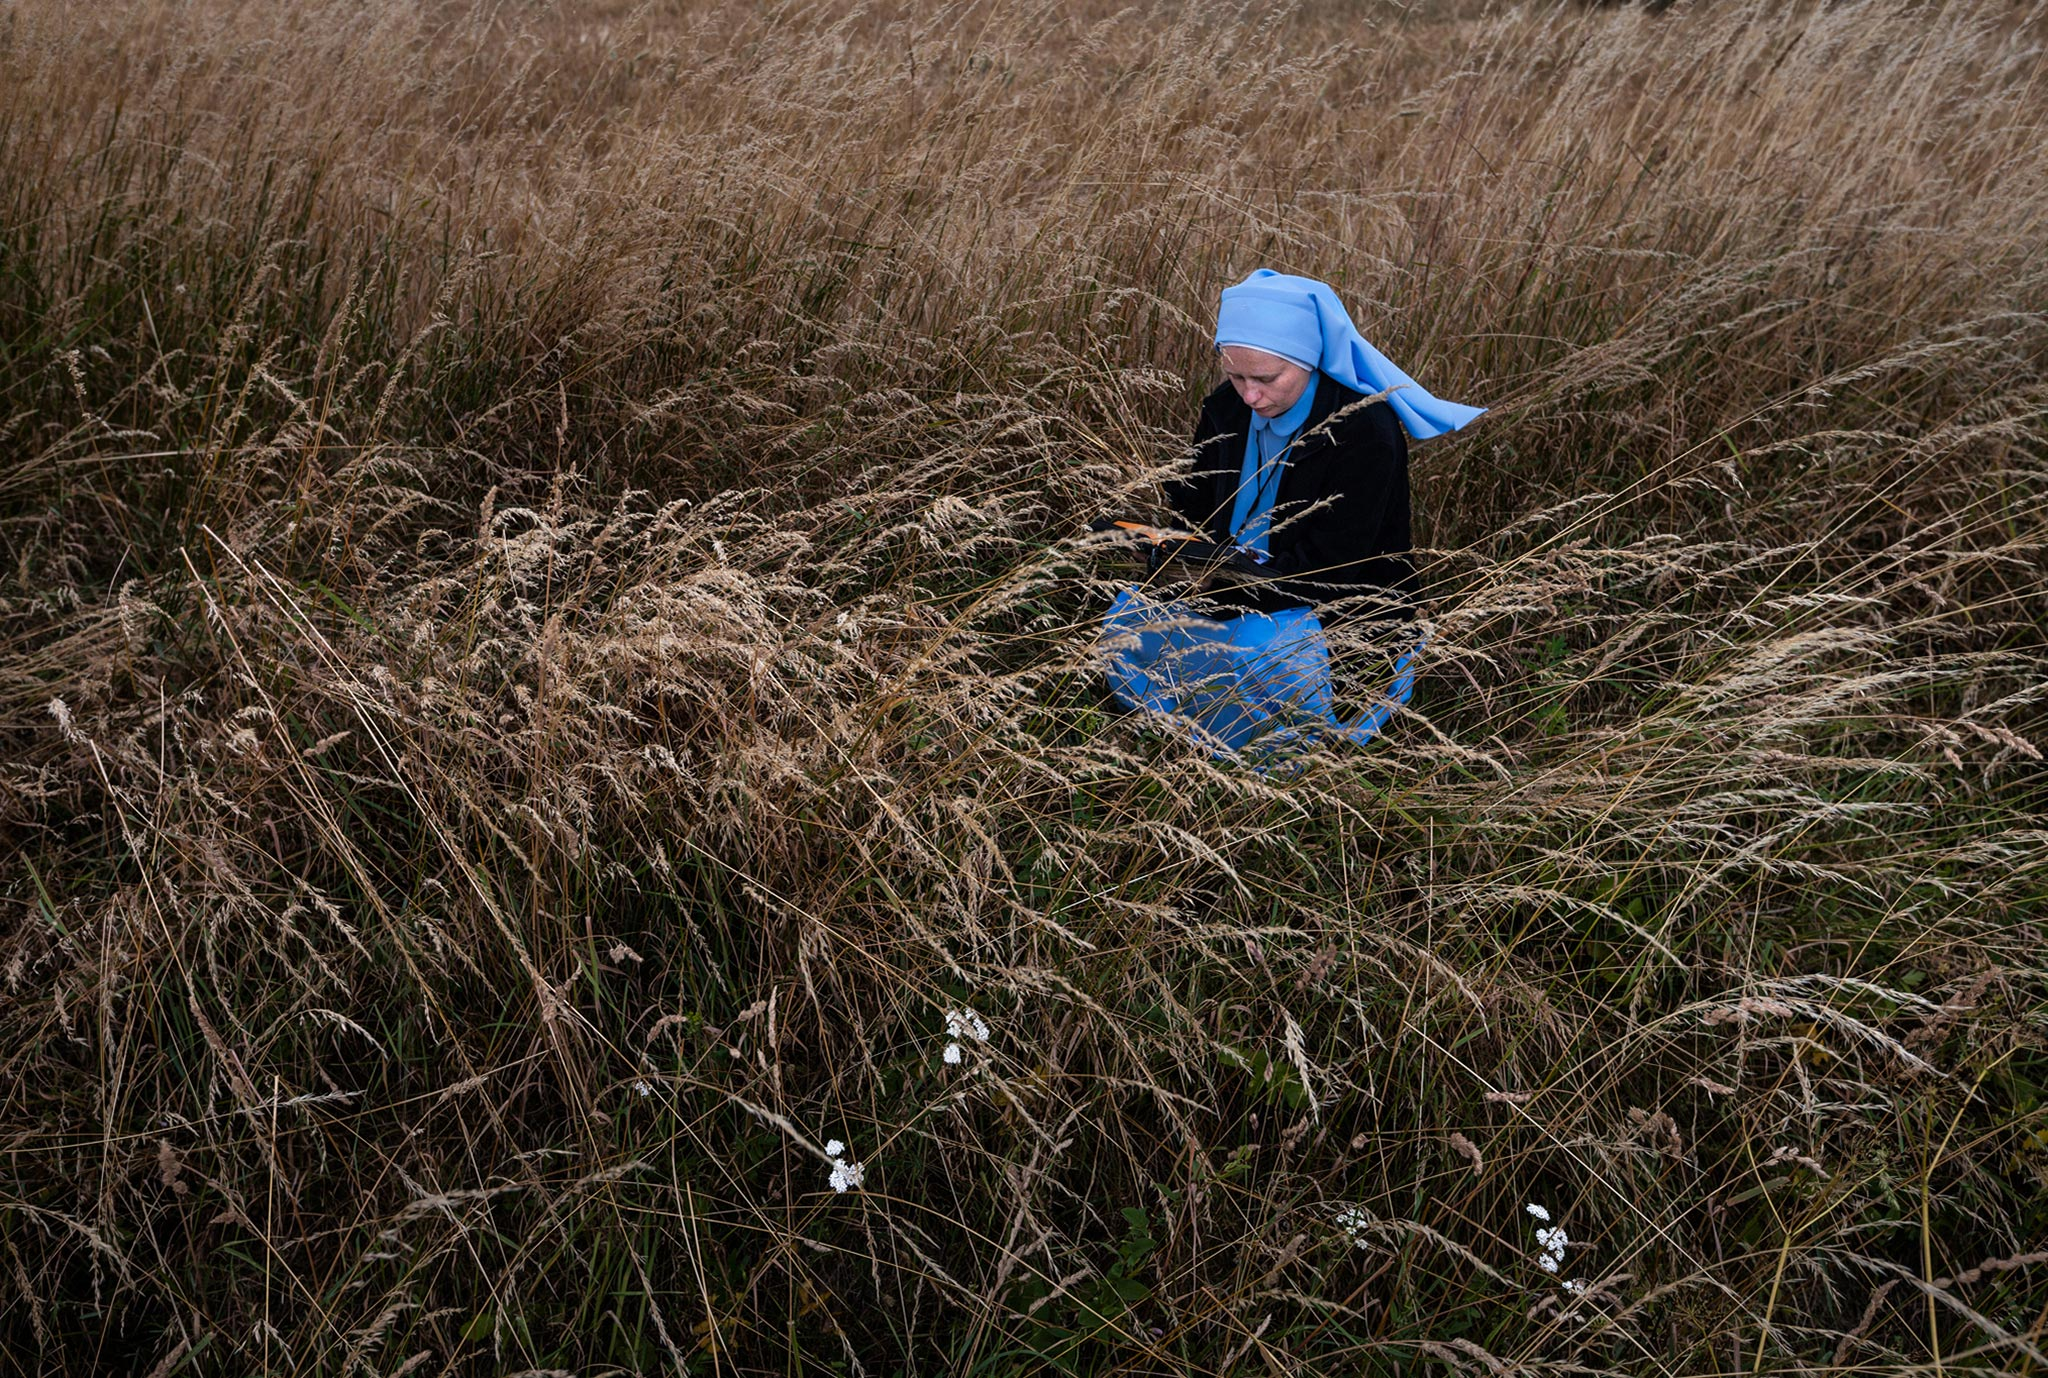 Sister Marzena Michalczyck, 31, a nun from Kraków, Poland, pauses to pray during her weeklong walk to Częstochowa. Millions of pilgrims trek there to see the Black Madonna, an icon believed to bestow miracles upon the faithful.